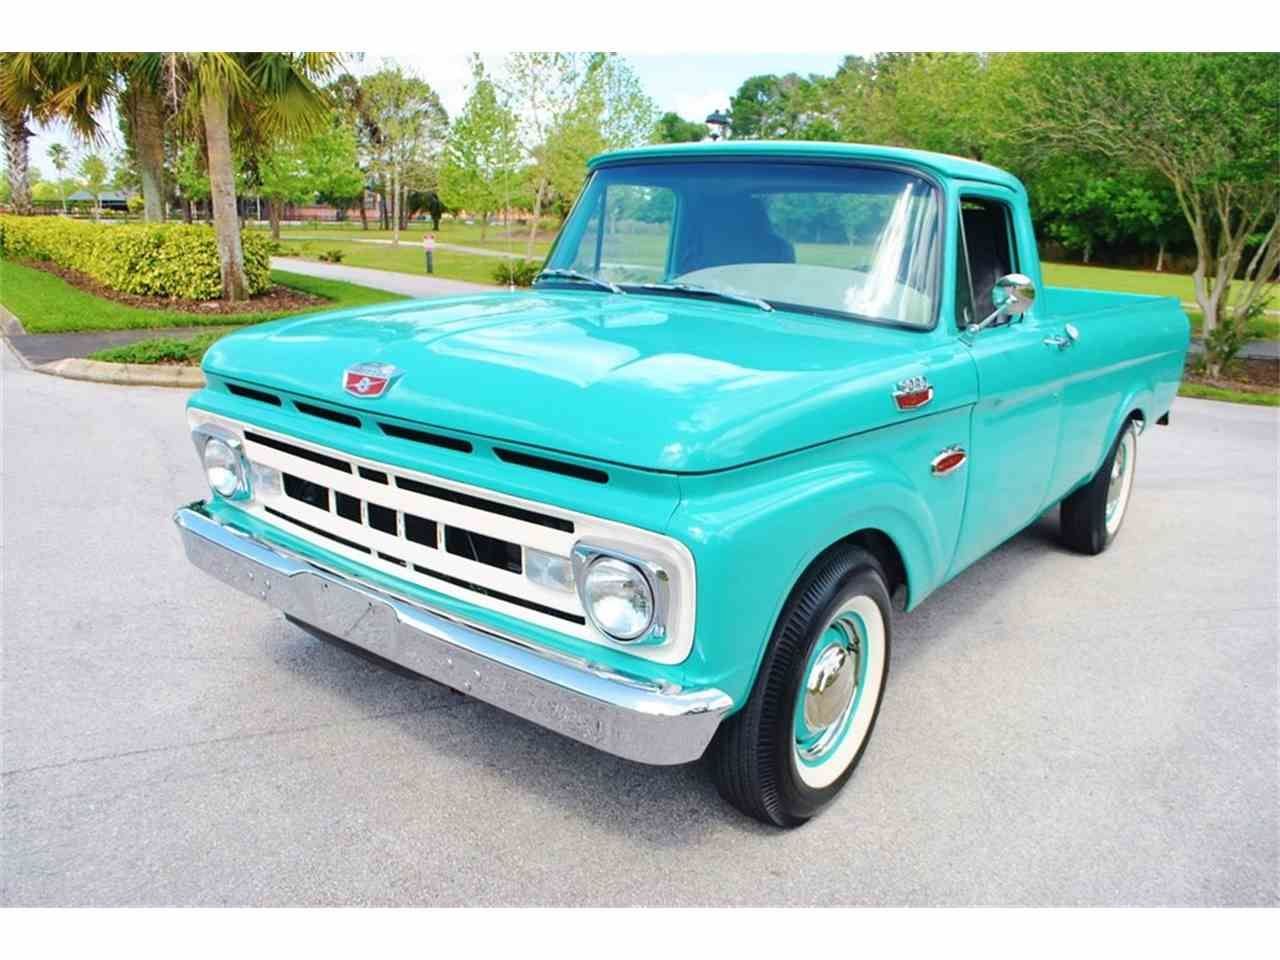 image result for 1961 ford pickup [ 1280 x 960 Pixel ]